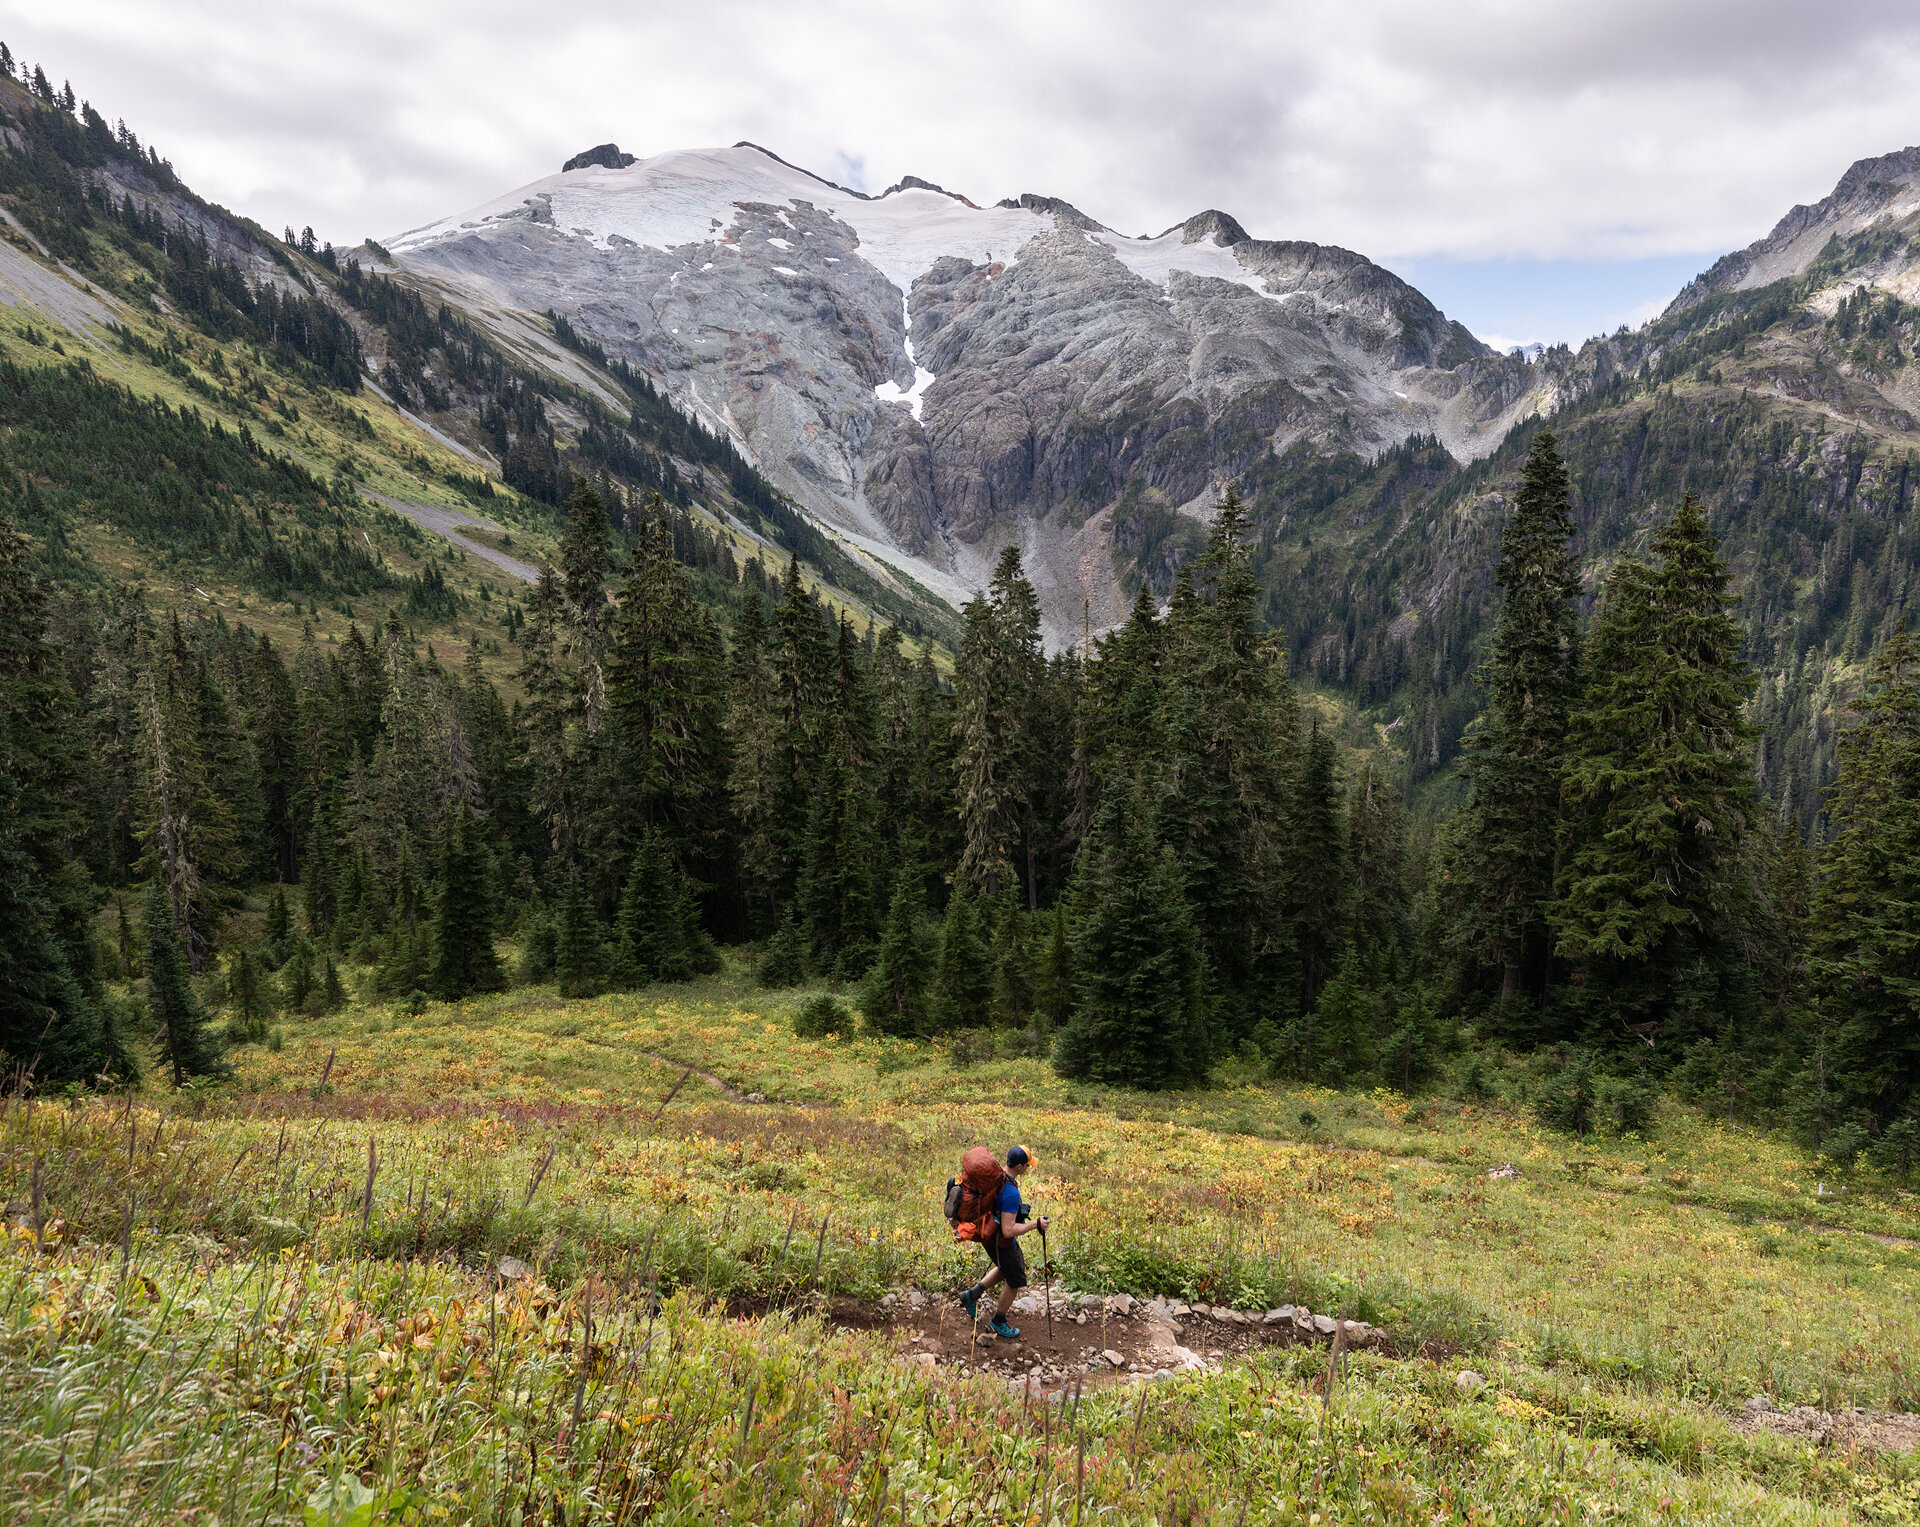 Hiking down from Hannegan Pass with Ruth Mountain in the background